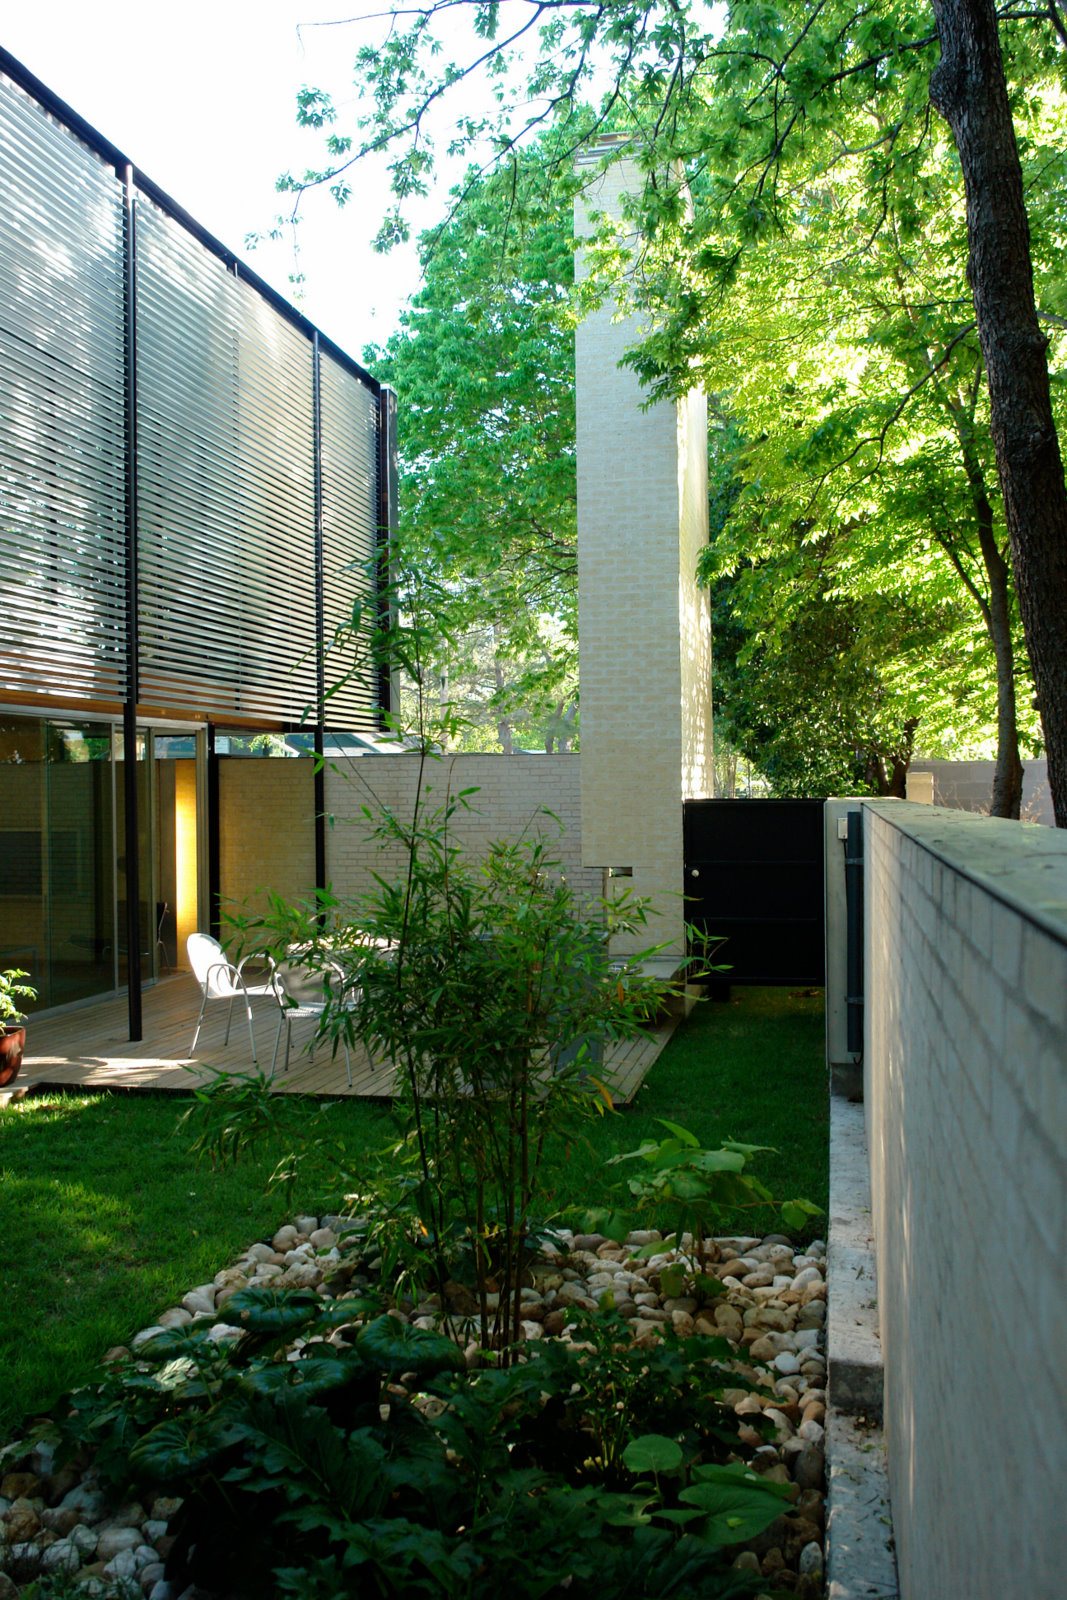 Along the entire west side of the house, a lush courtyard creates private exterior space that can be enjoyed during much of the year in Austin, particularly with large shade trees overhead. The entire ground level of the house opens onto the courtyard, in